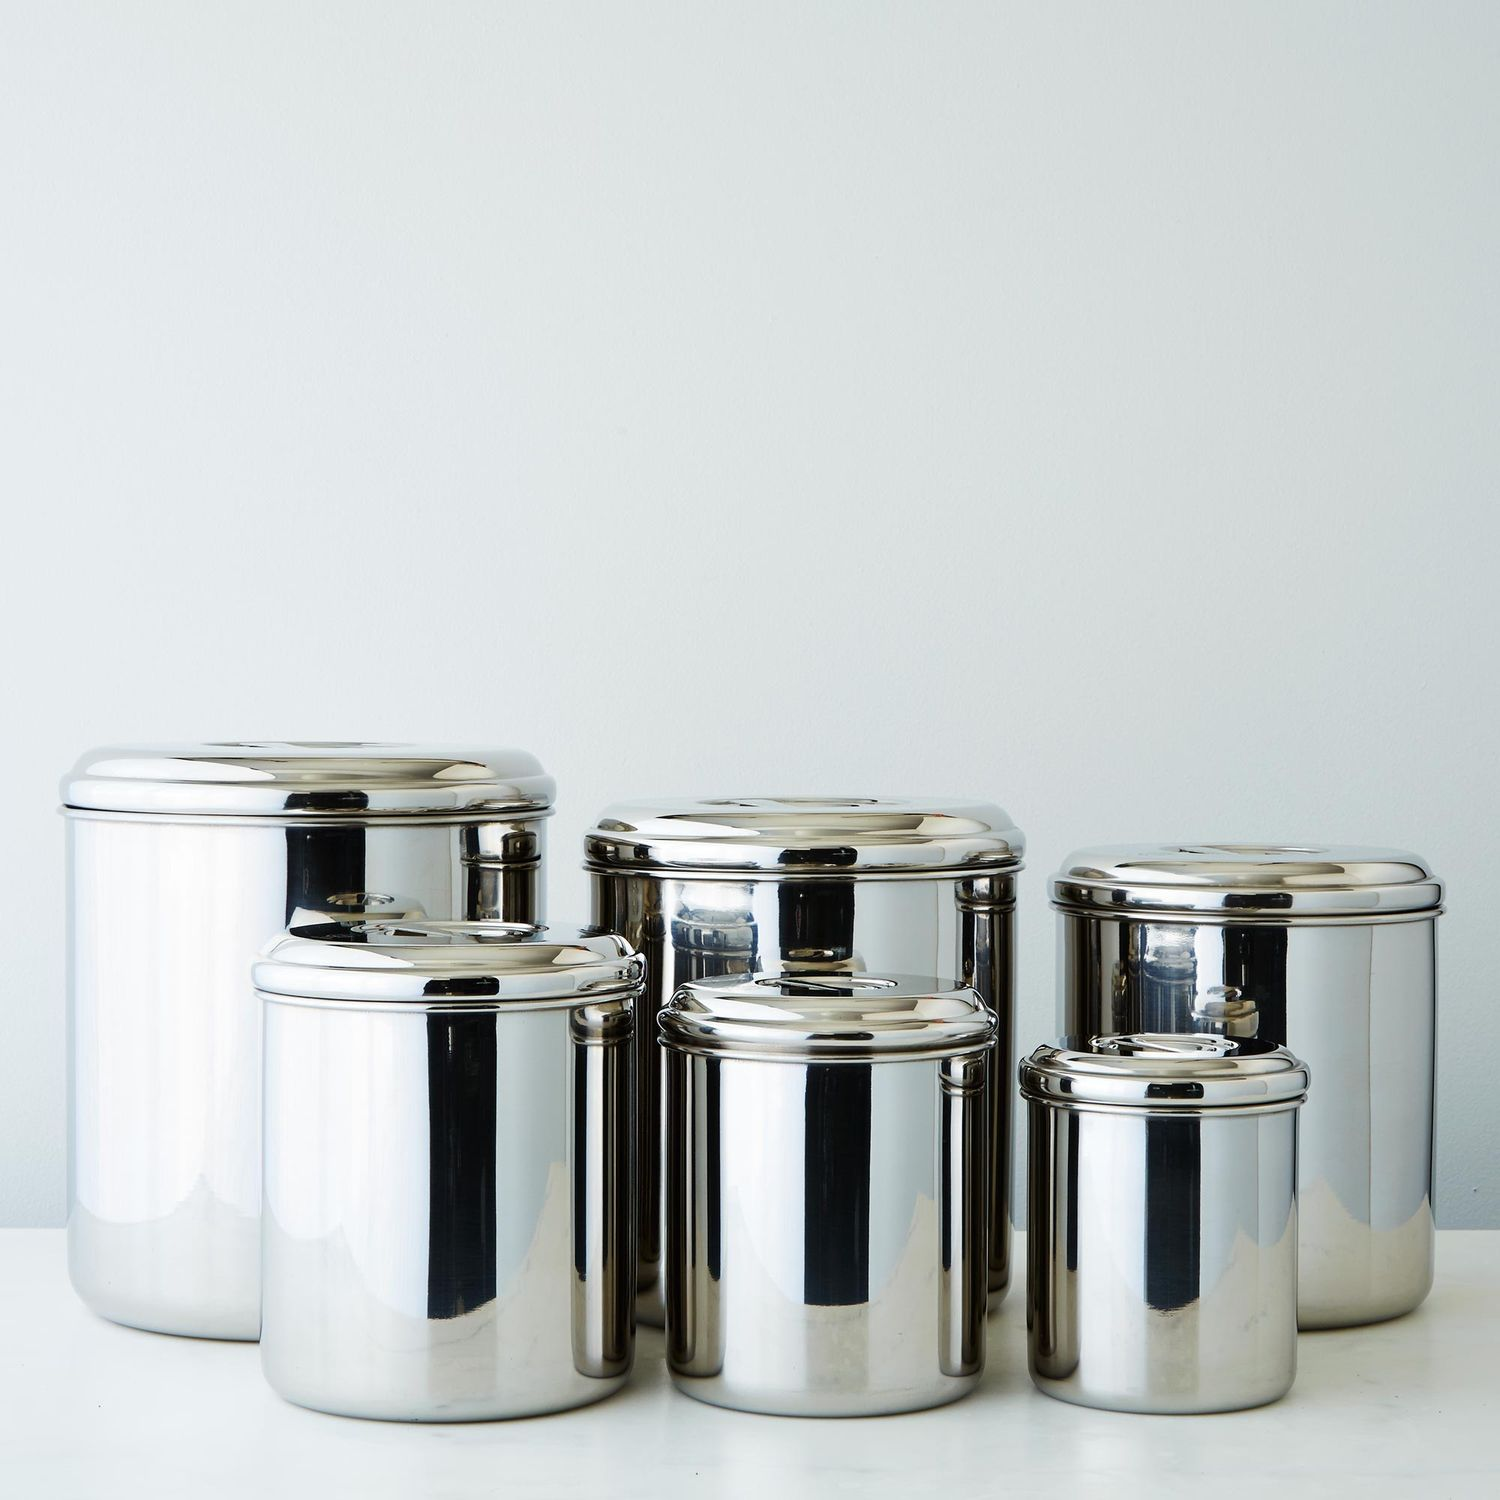 stainless steel kitchen canister stainless steel canisters set of 6 on food52 22166